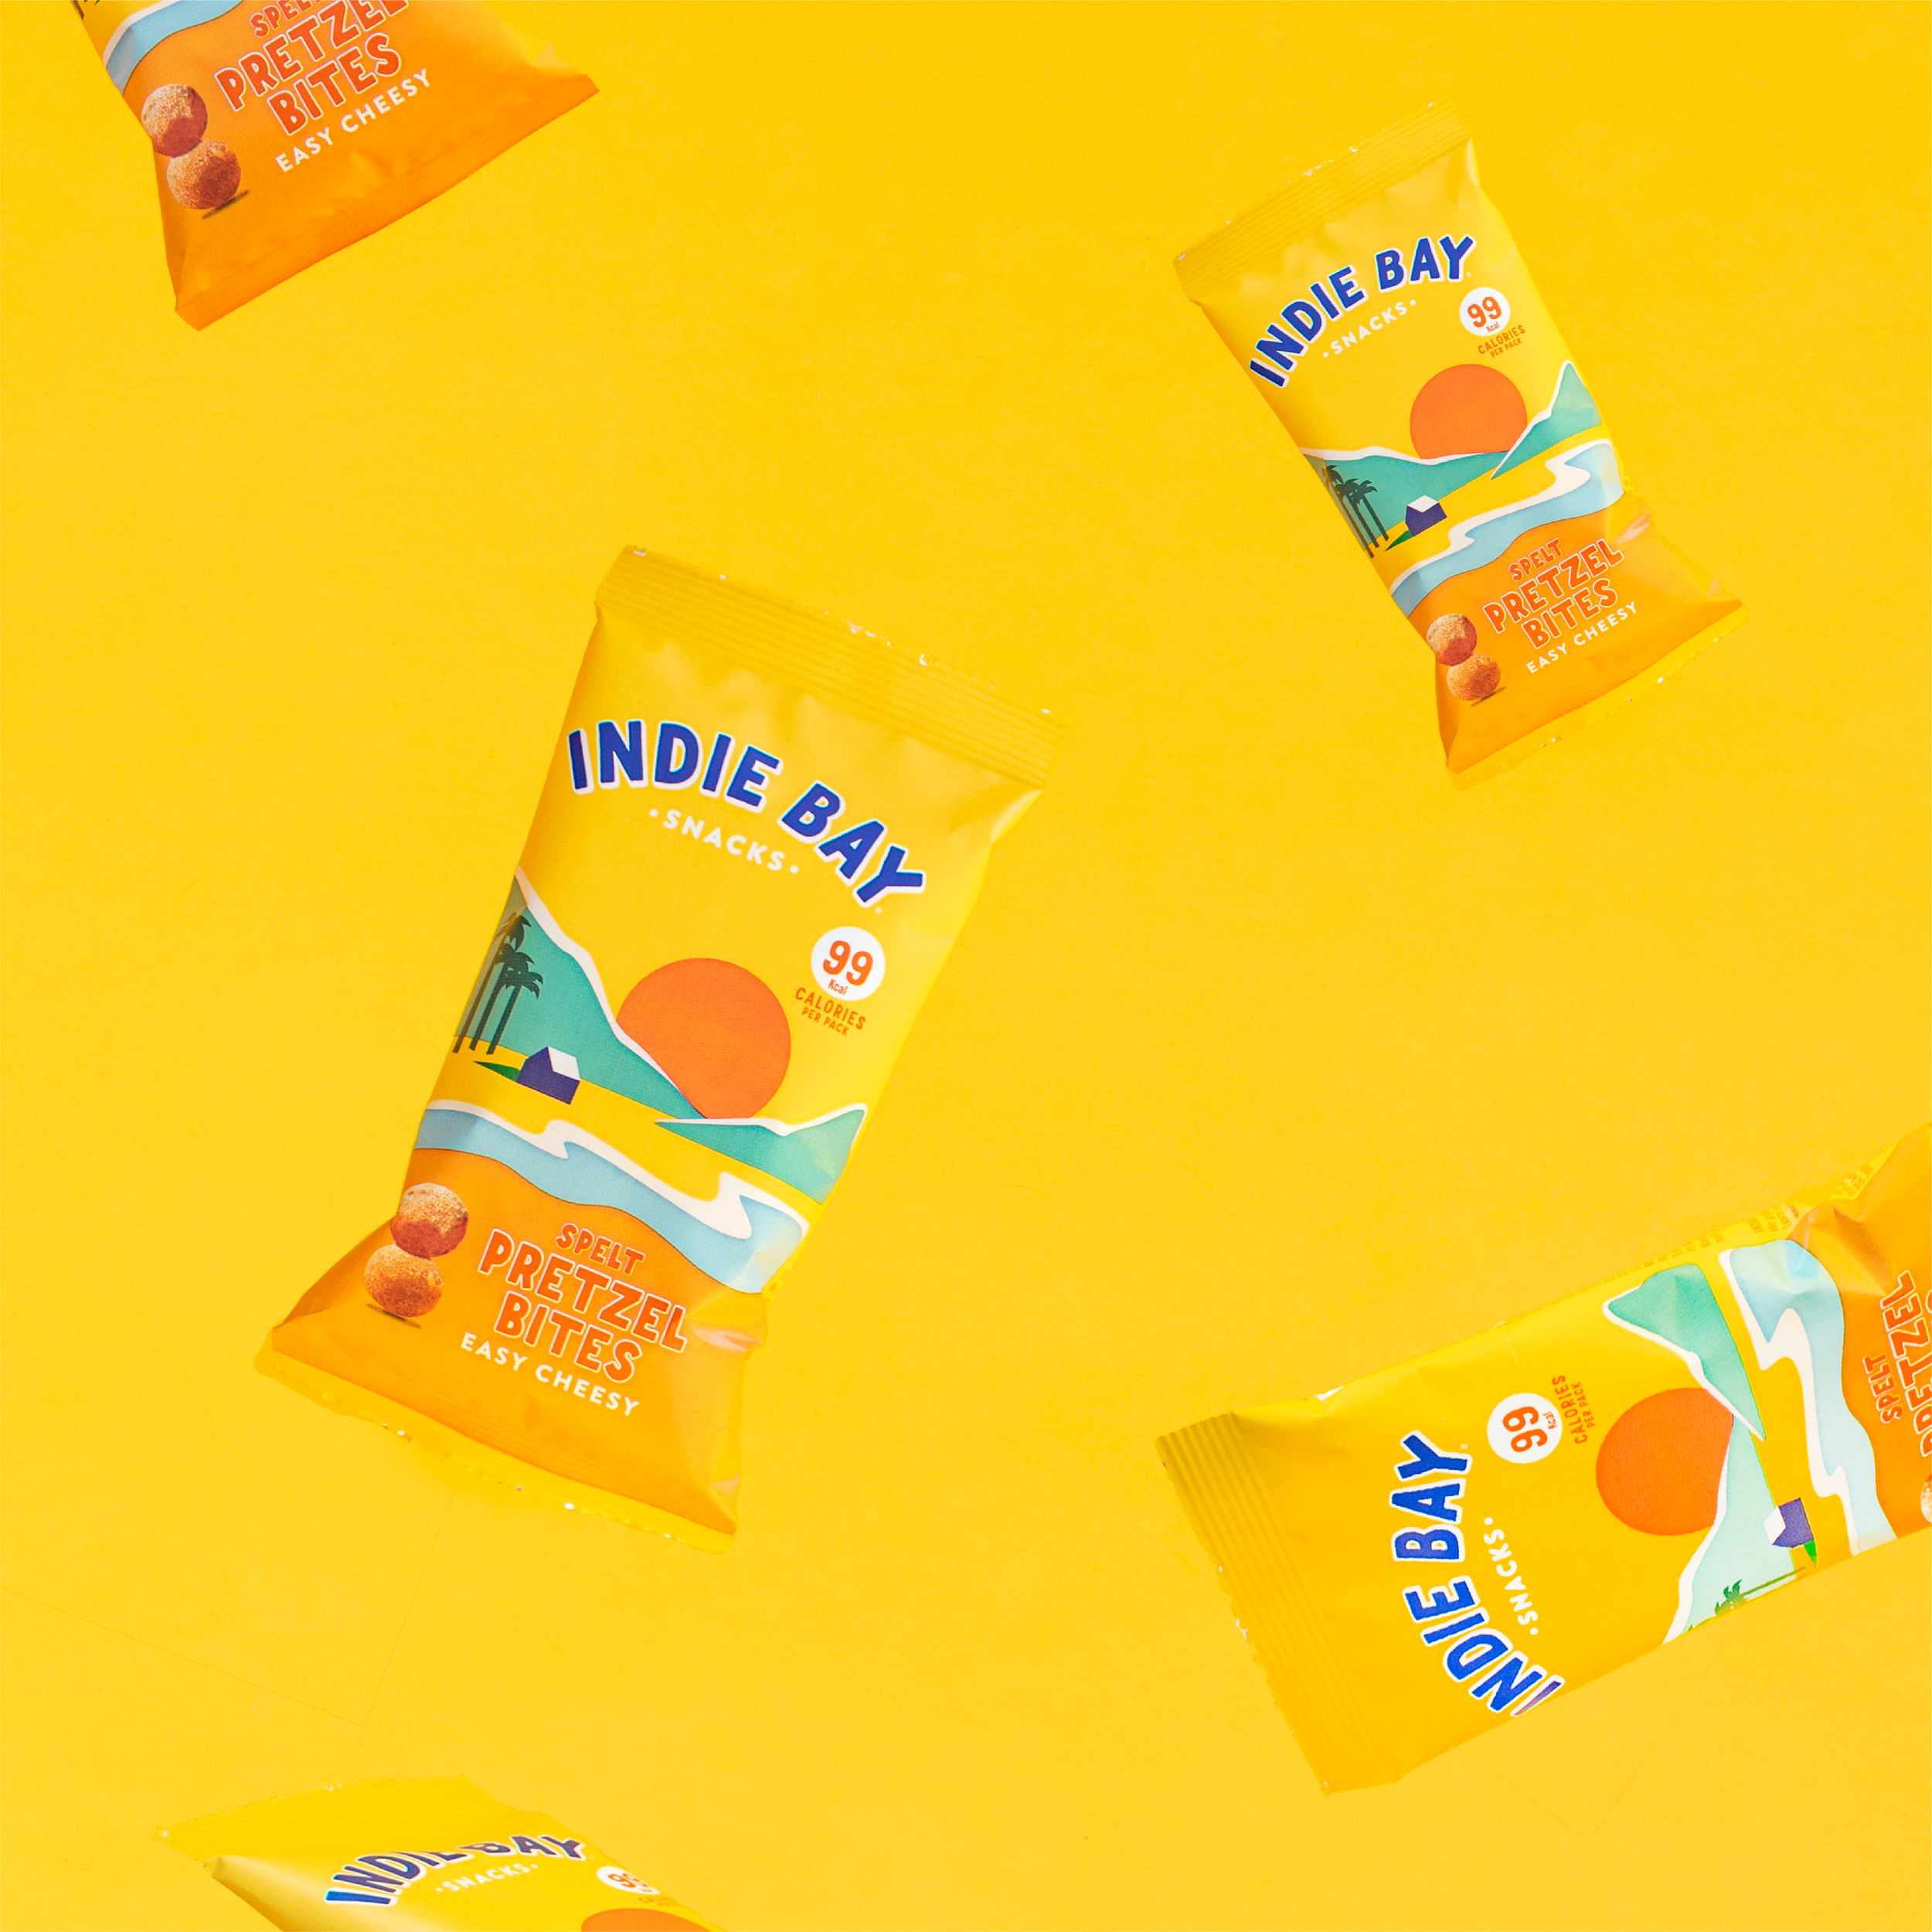 indie bay snacks - research + design + production + awareness